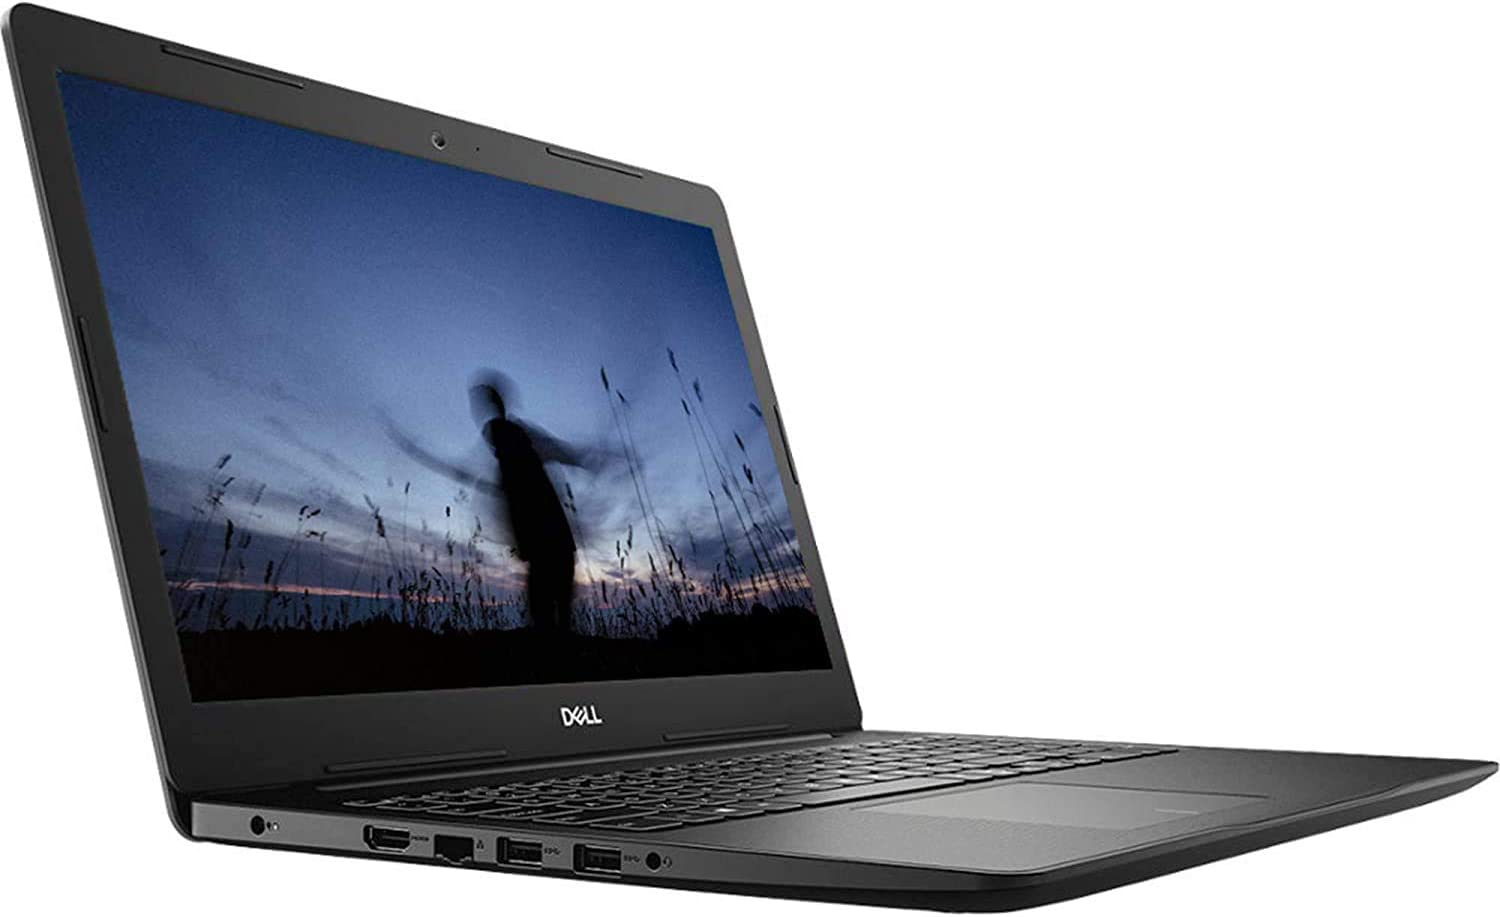 Dell Inspiron 14 3000 Business Laptop Computer I 14